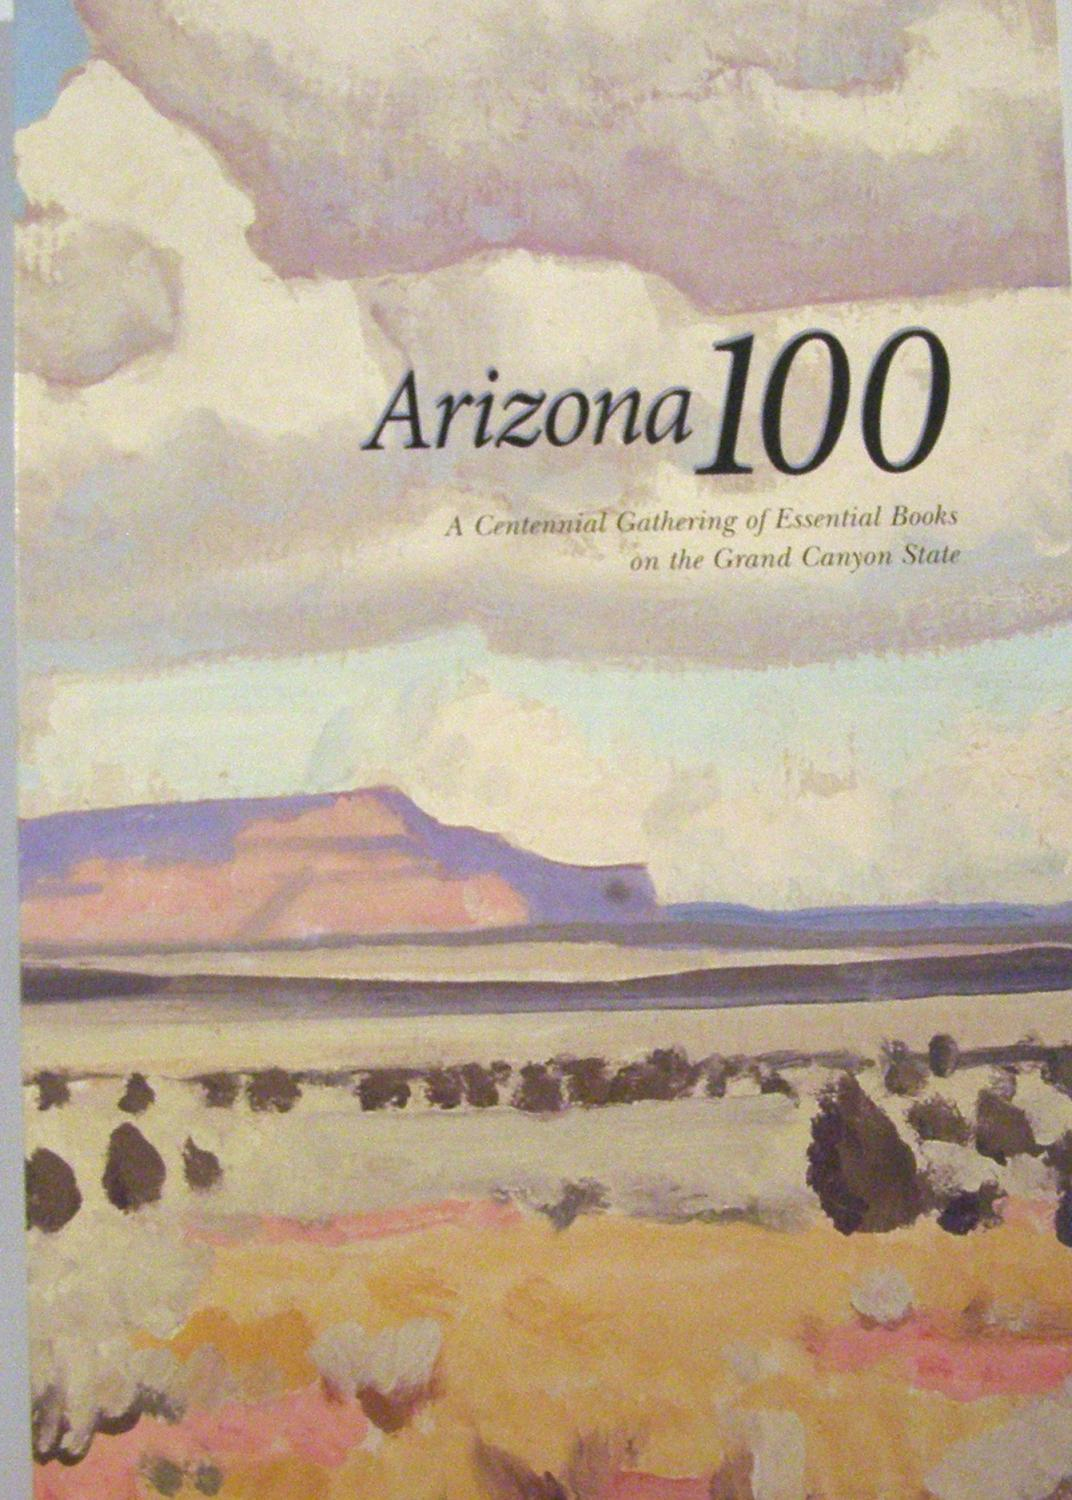 Arizona 100: A Centennial Gathering of Essential Books on the Grand Canyon State (Signed), - Broyles, Bill, Steve Cox, Bruce J. Dinges, W. David Laird, Alfredo Gonzales, Roger Myers and James J. Owens